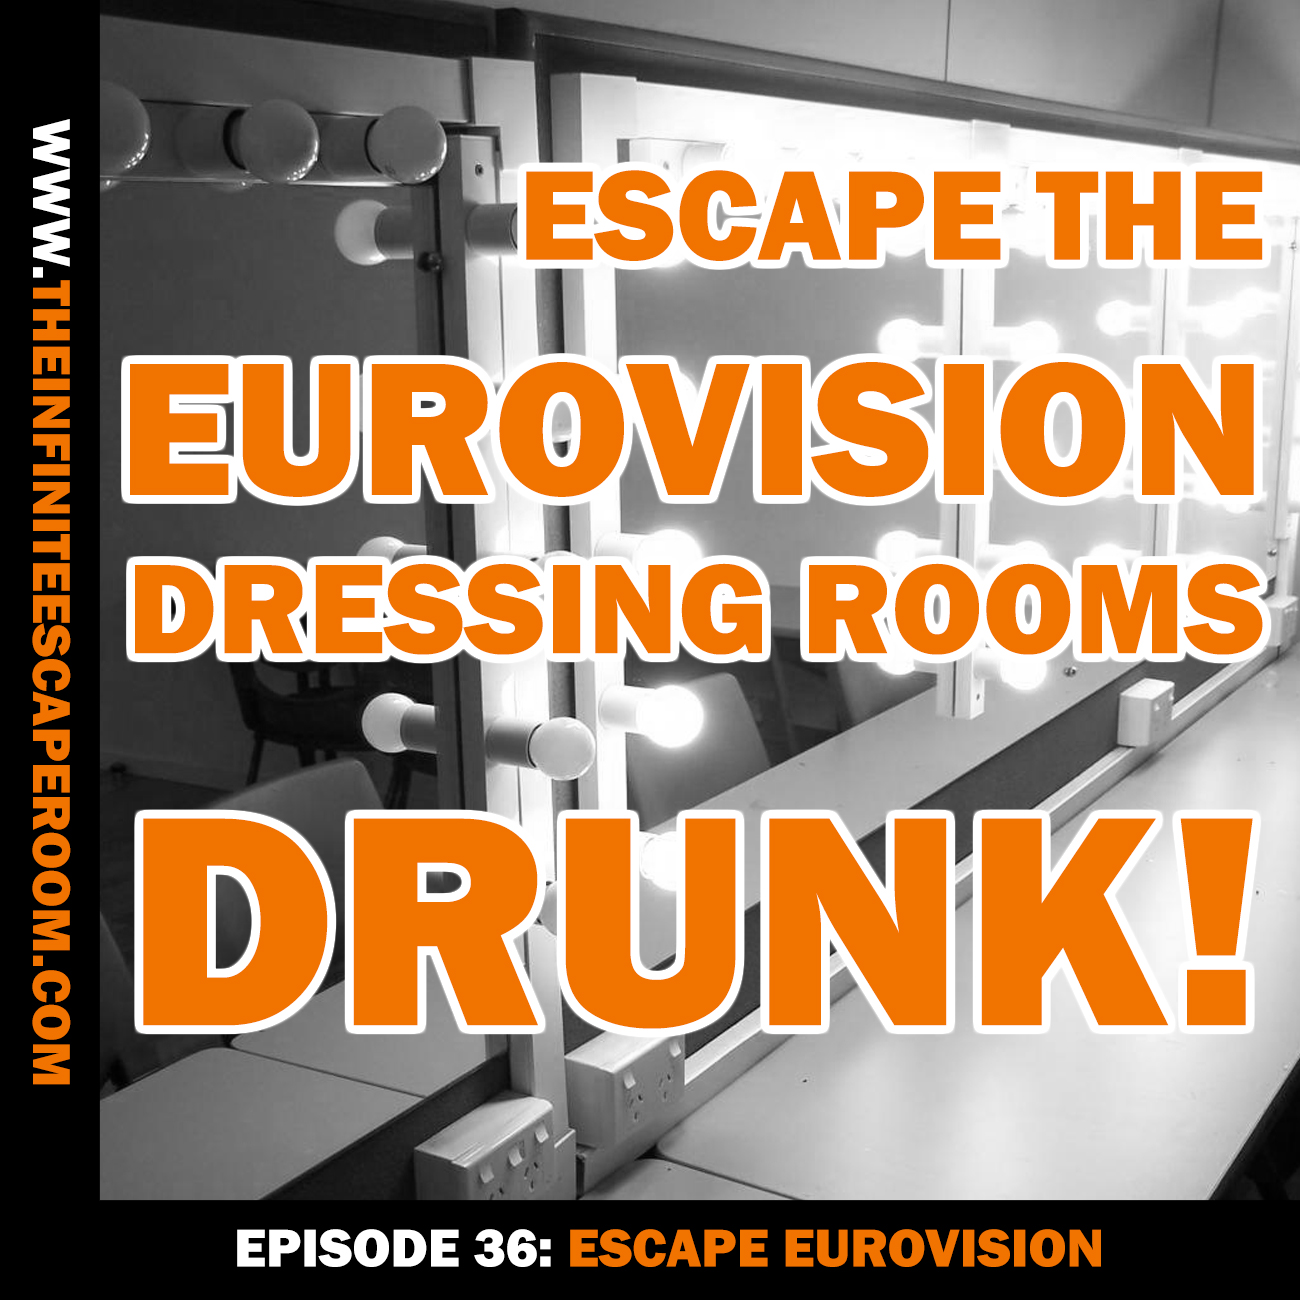 Escape the Eurovision dressing rooms…drunk!